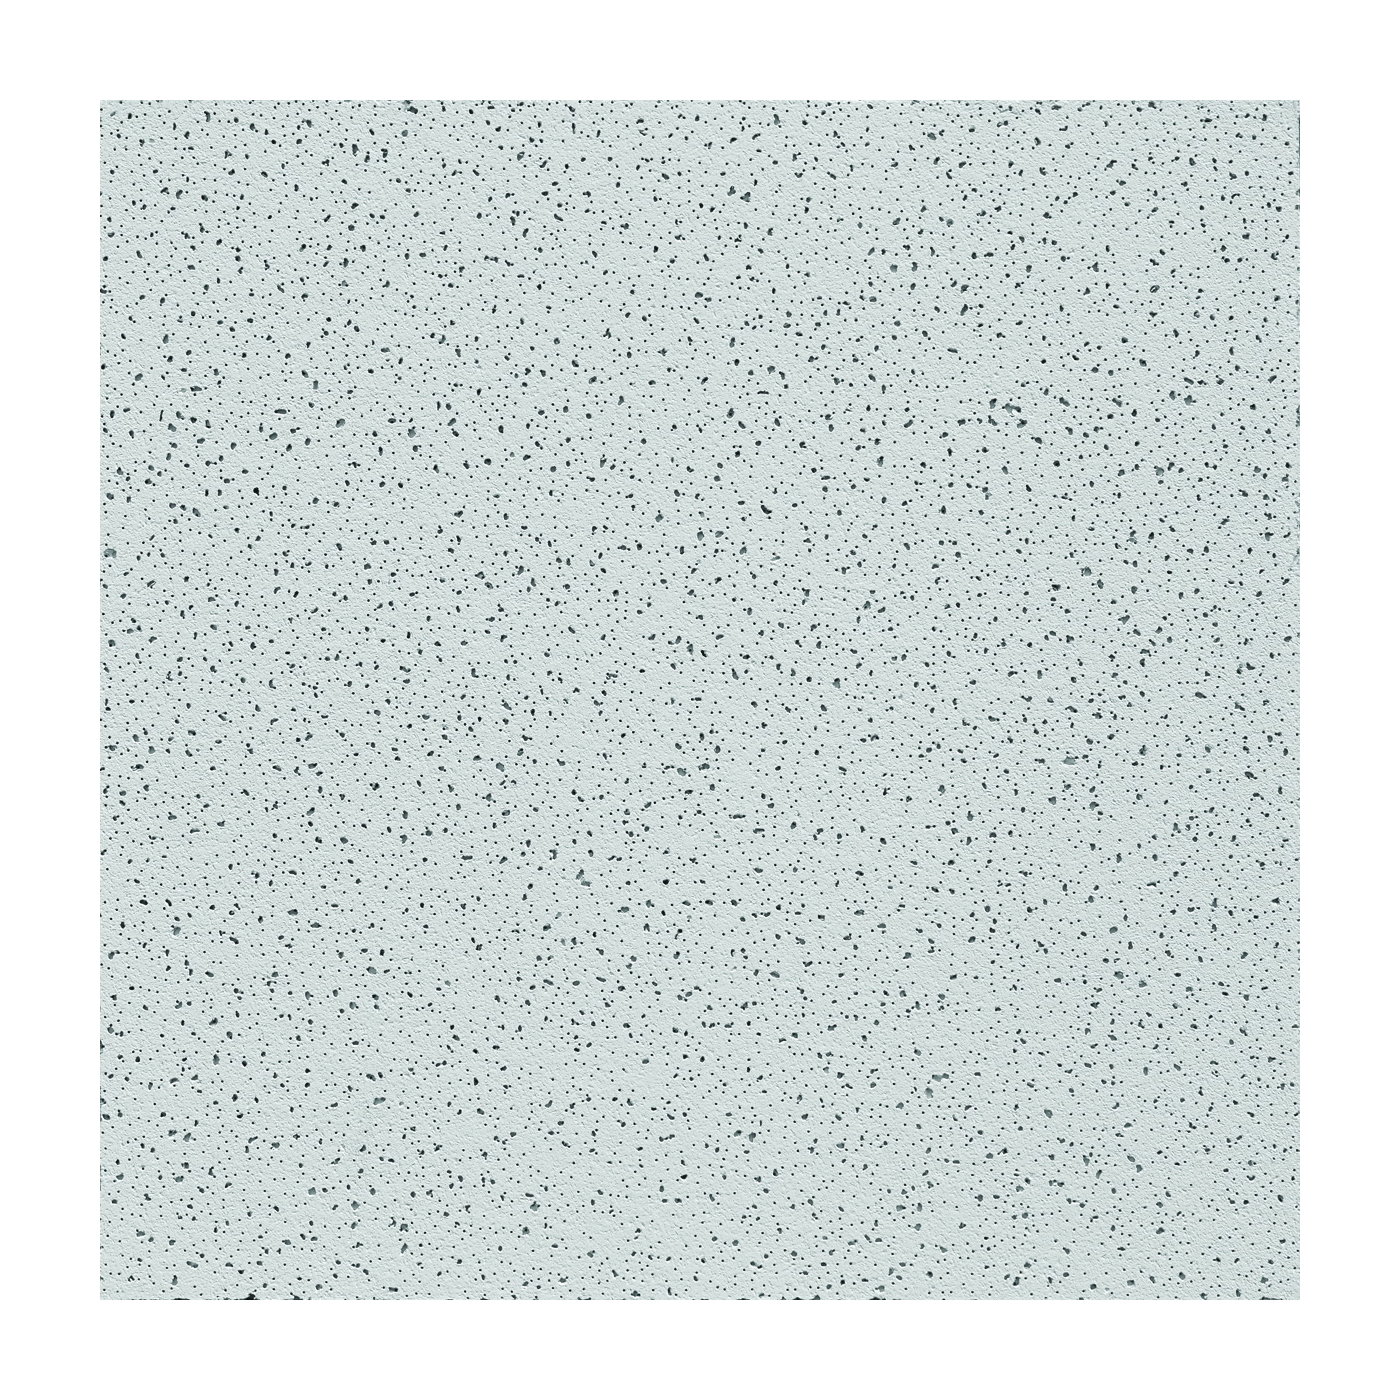 Picture of USG RADAR R2120 Ceiling Panel, 2 ft L, 2 ft W, 5/8 in Thick, Mineral Fiber, White